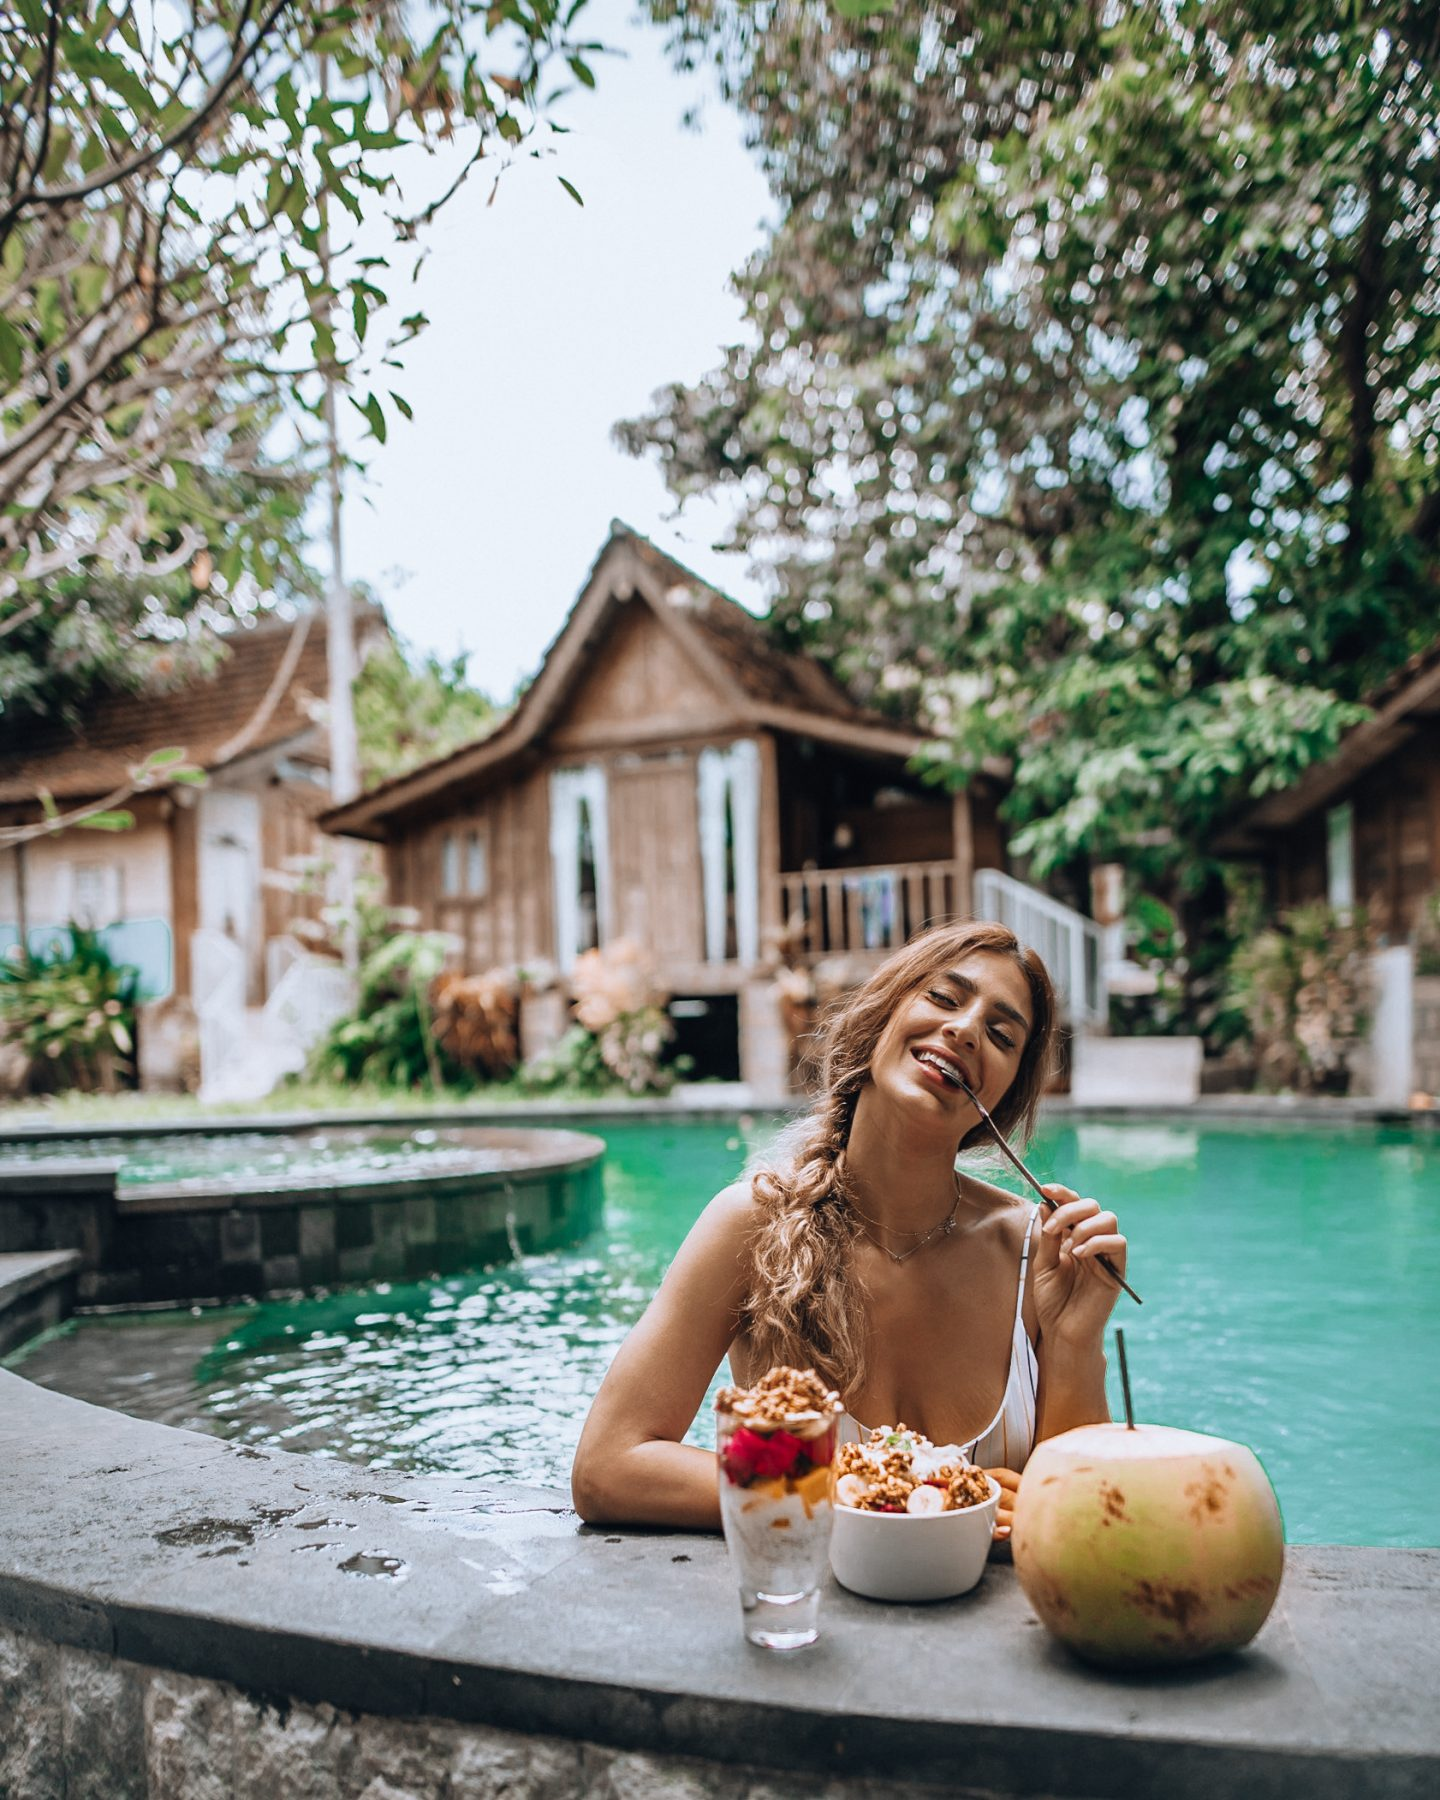 Eating breakfast in the pool in Bali